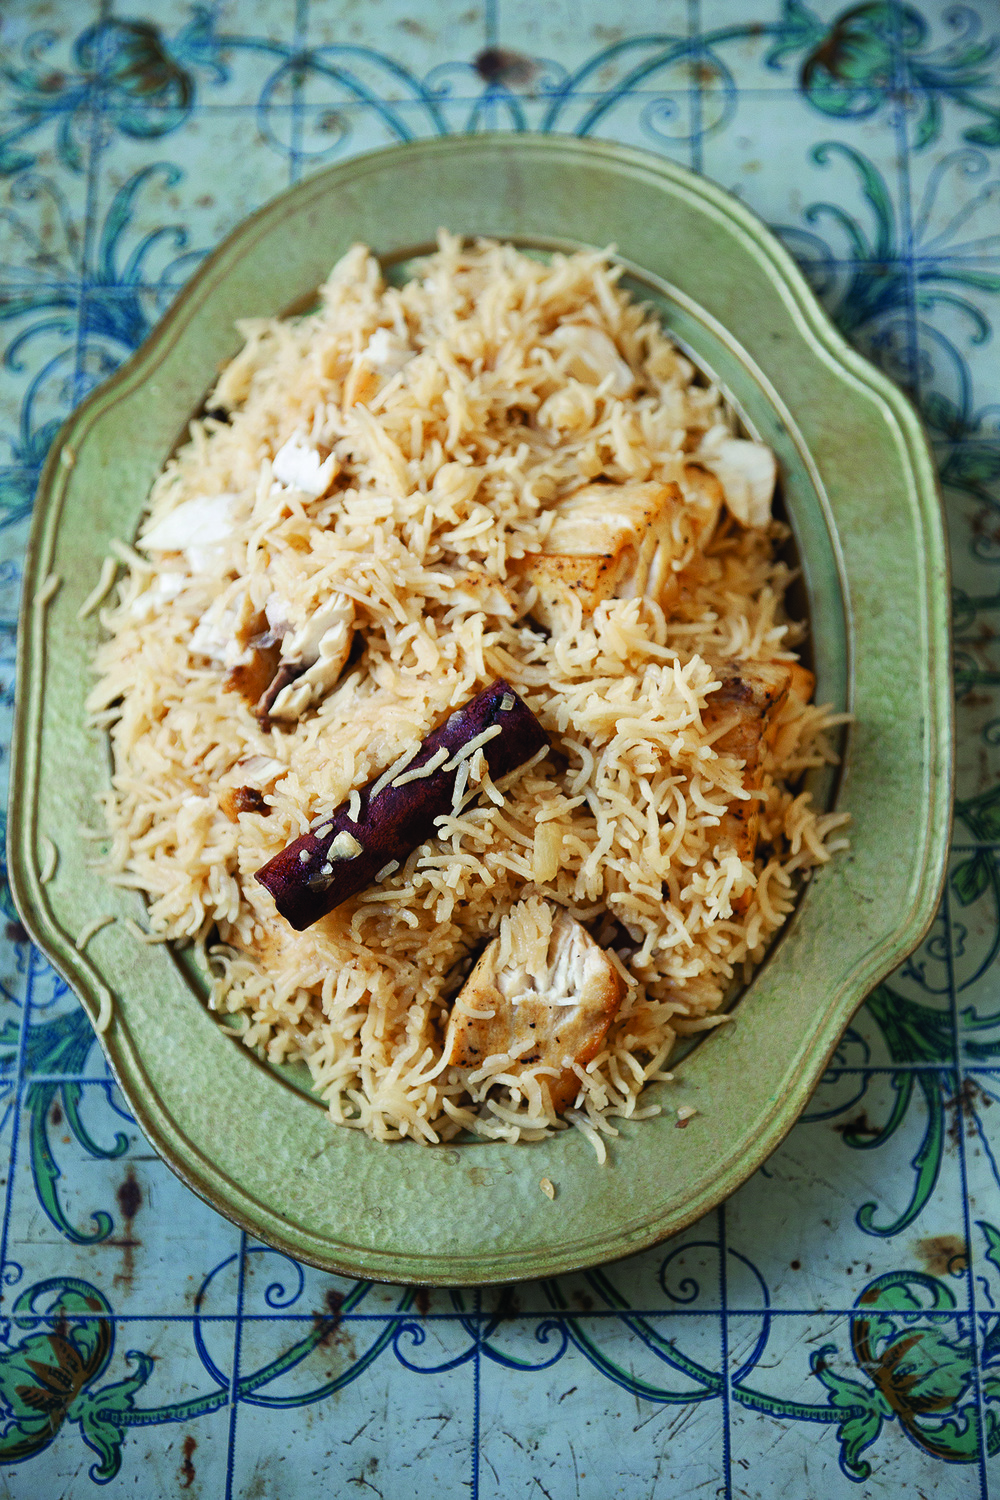 Sayadiya from Felicia Campbell's The Food of Oman | Photograph © Ariana Lindquist